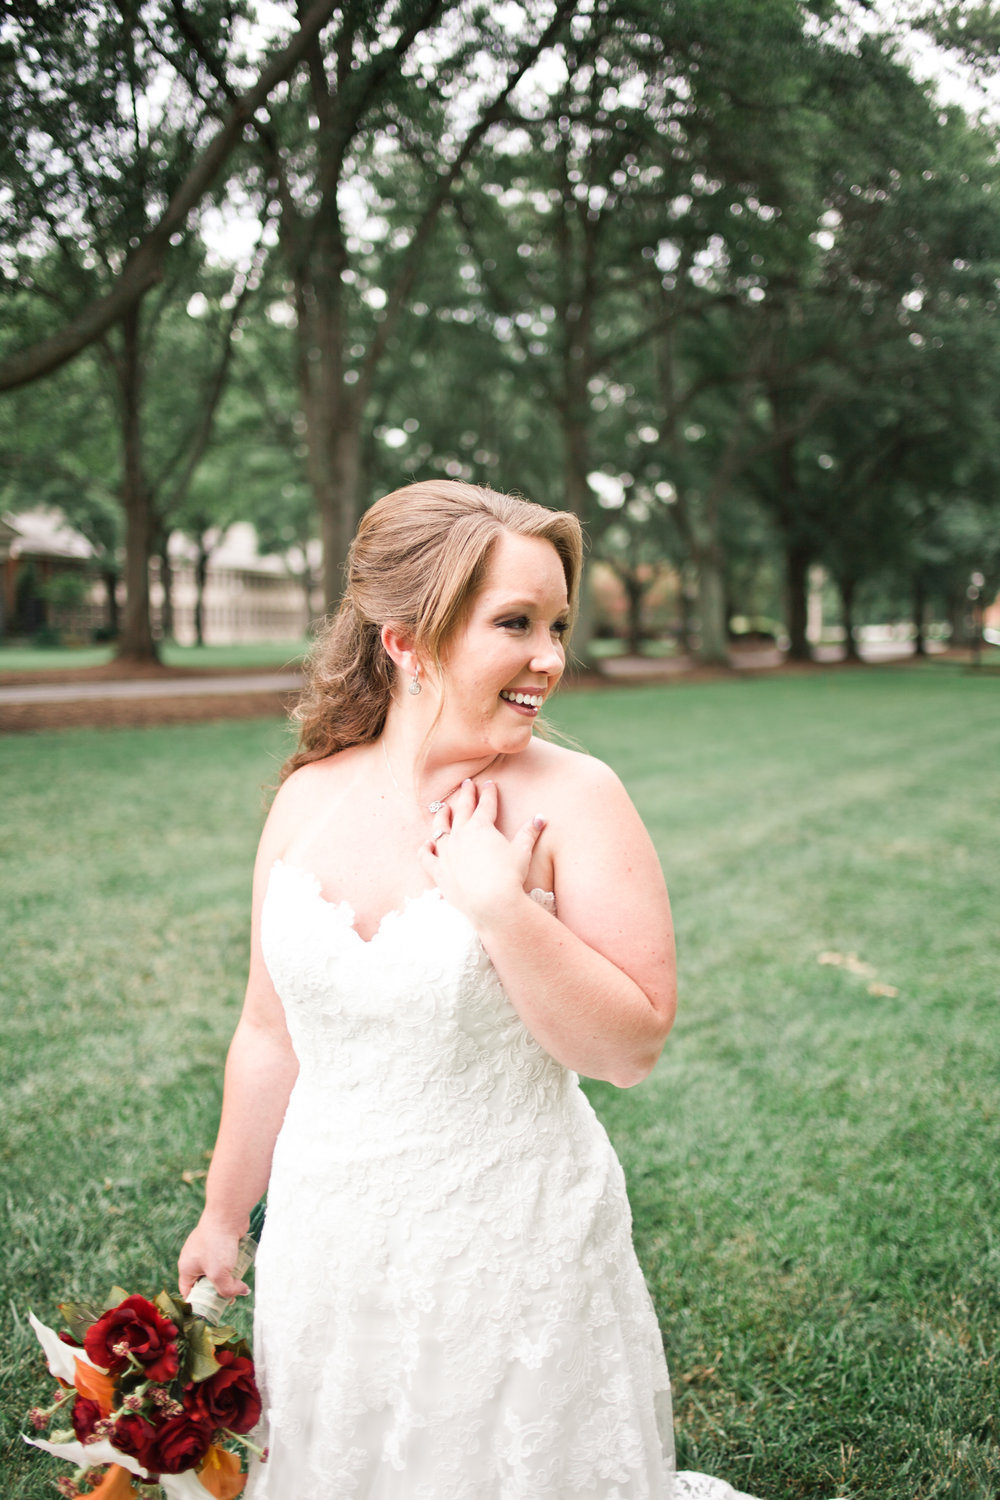 gabbie_bridal_poured_out_photography-8.jpg